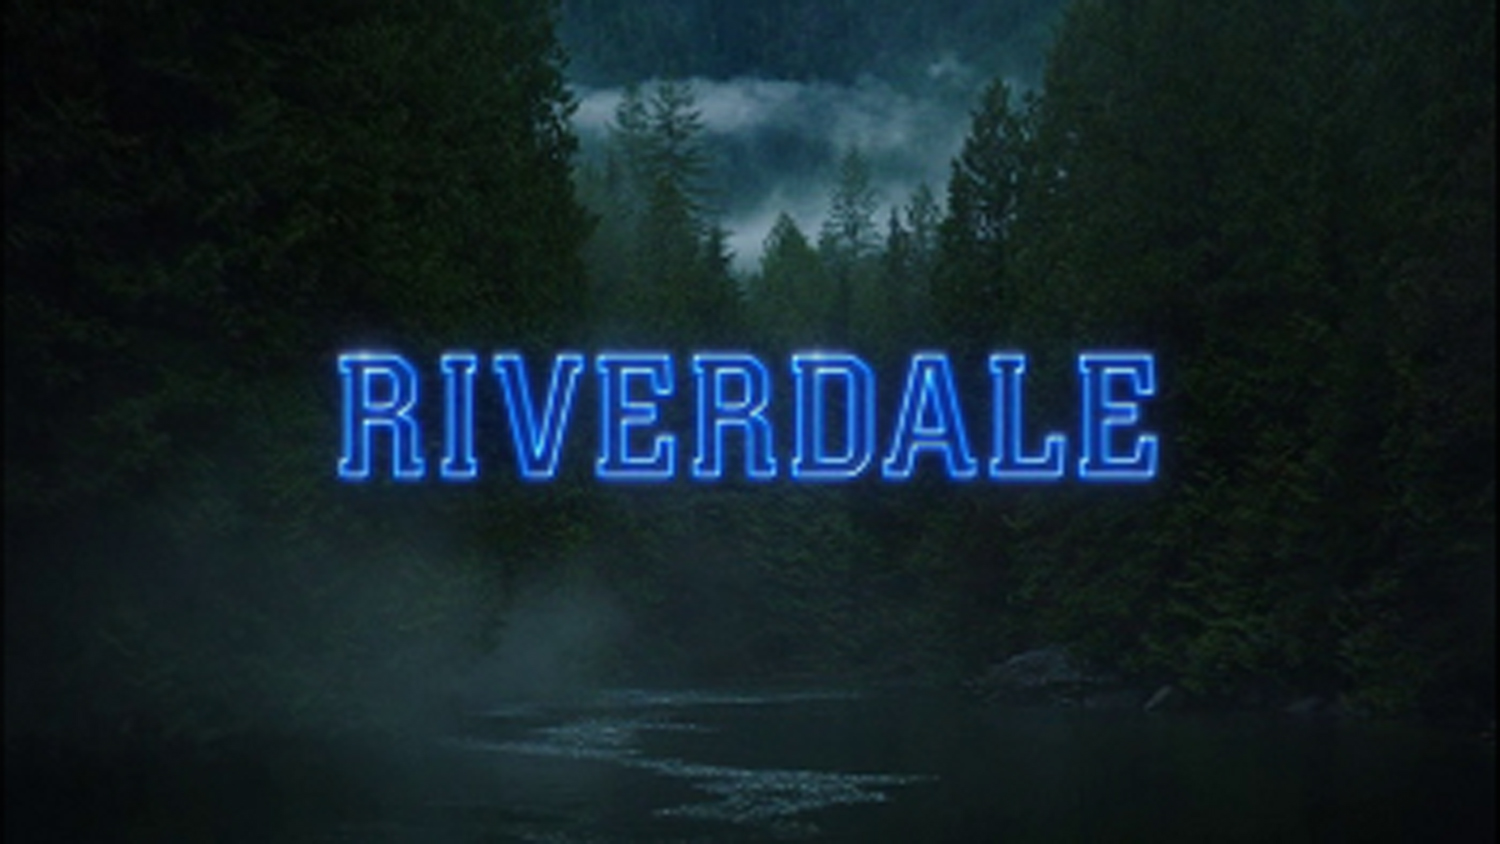 """Riverdale"" title card."